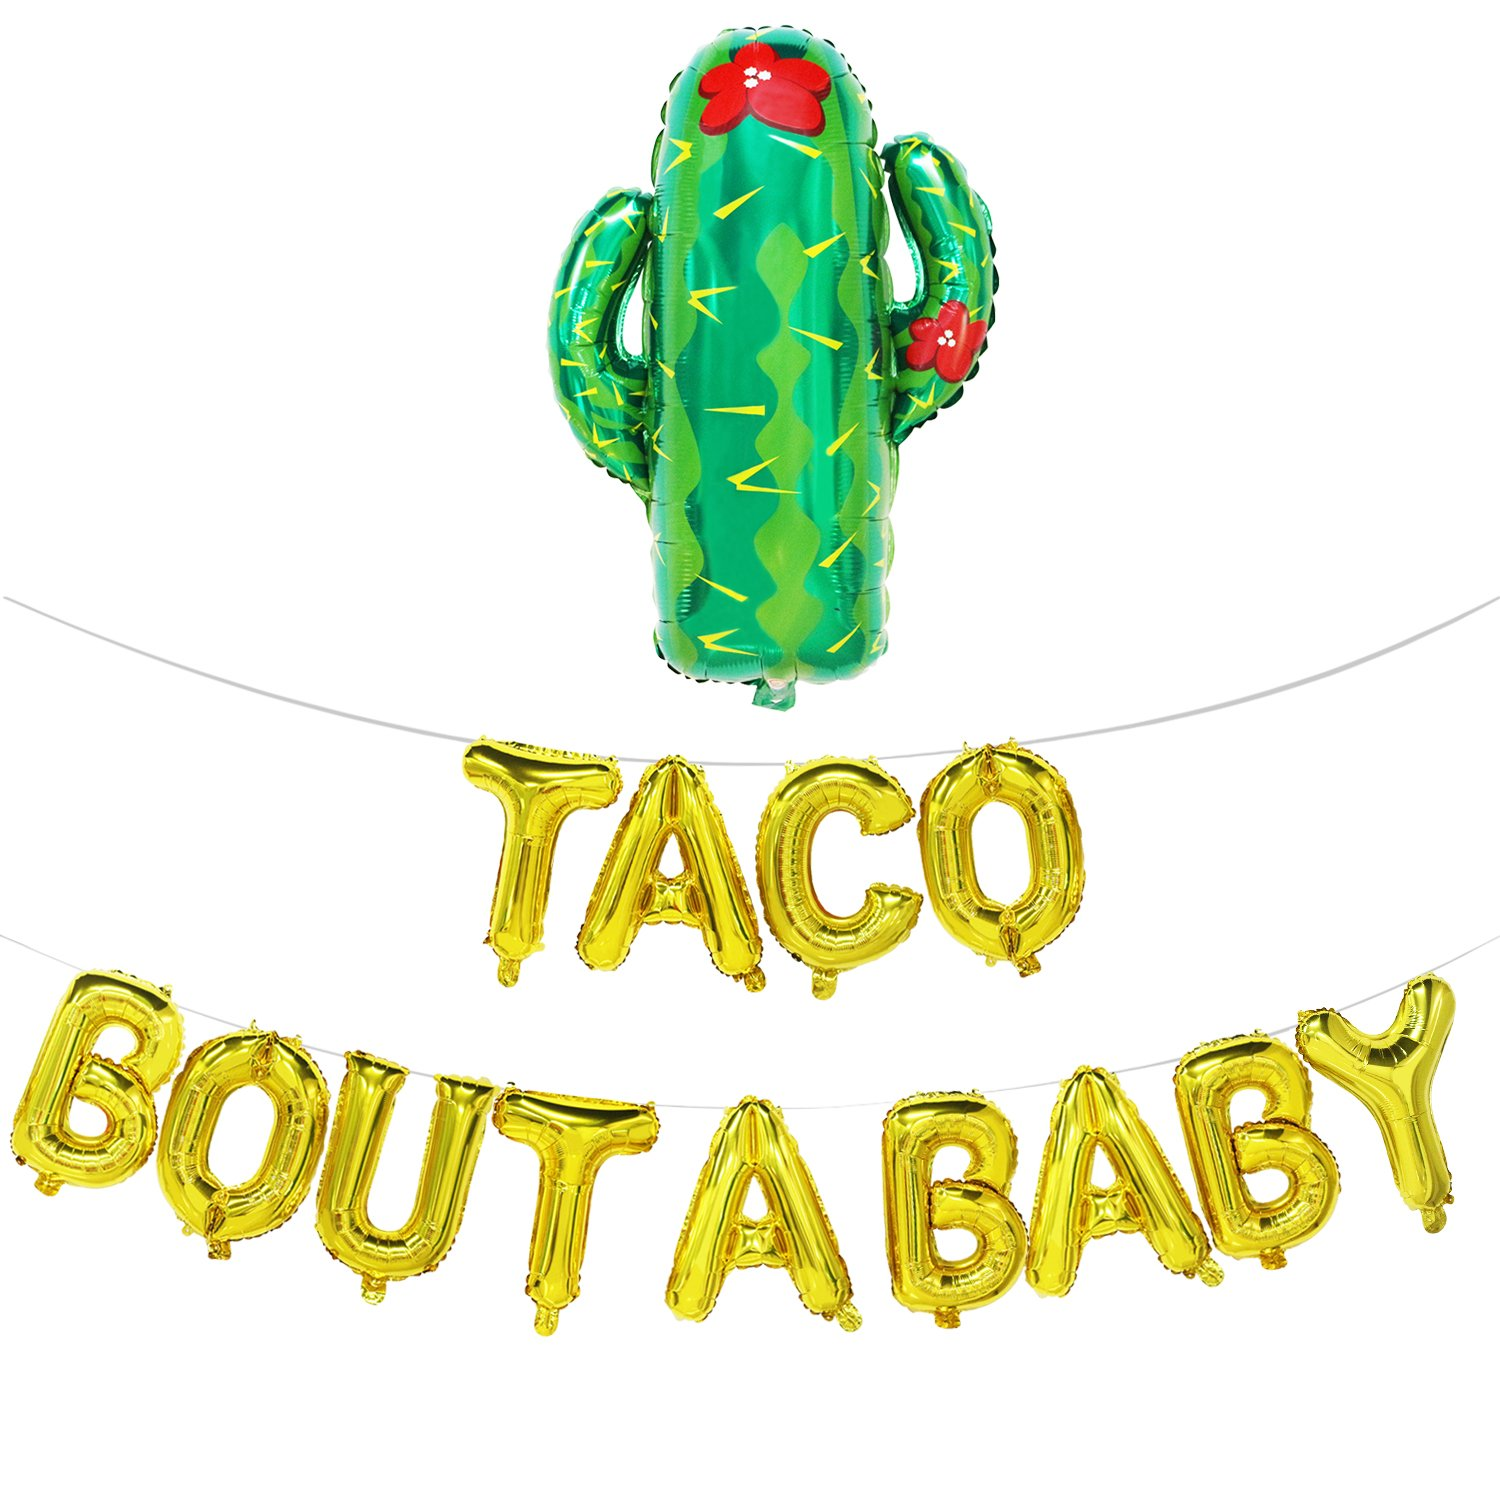 Taco Bout A Baby Balloons Letters with Cactus | Fiesta Theme Baby Shower Decorations | Baby Shower Banner | Pregnancy Announcement, Baby Announcement, Gender Reveal Party Supplies | Gold, 16inch by Mosoan